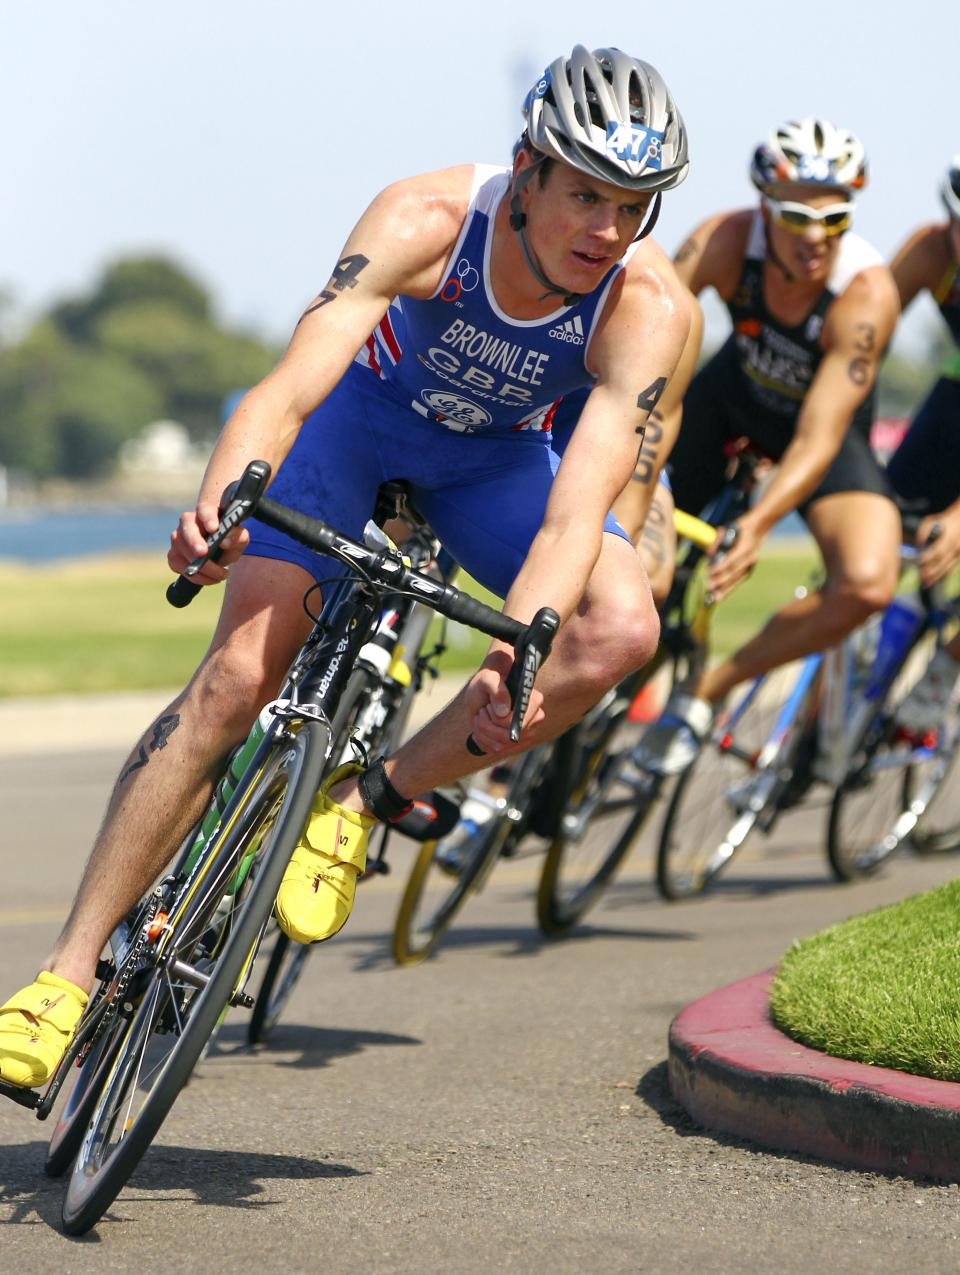 In this photo released by the International Triathlon Union, Britain's Jonathan Brownlee leads the elite men's field on the bike on his way to winning the ITU World Triathlon San Diego on Saturday, May 12, 2012. (AP Photo/ITU, Larry Rosa)